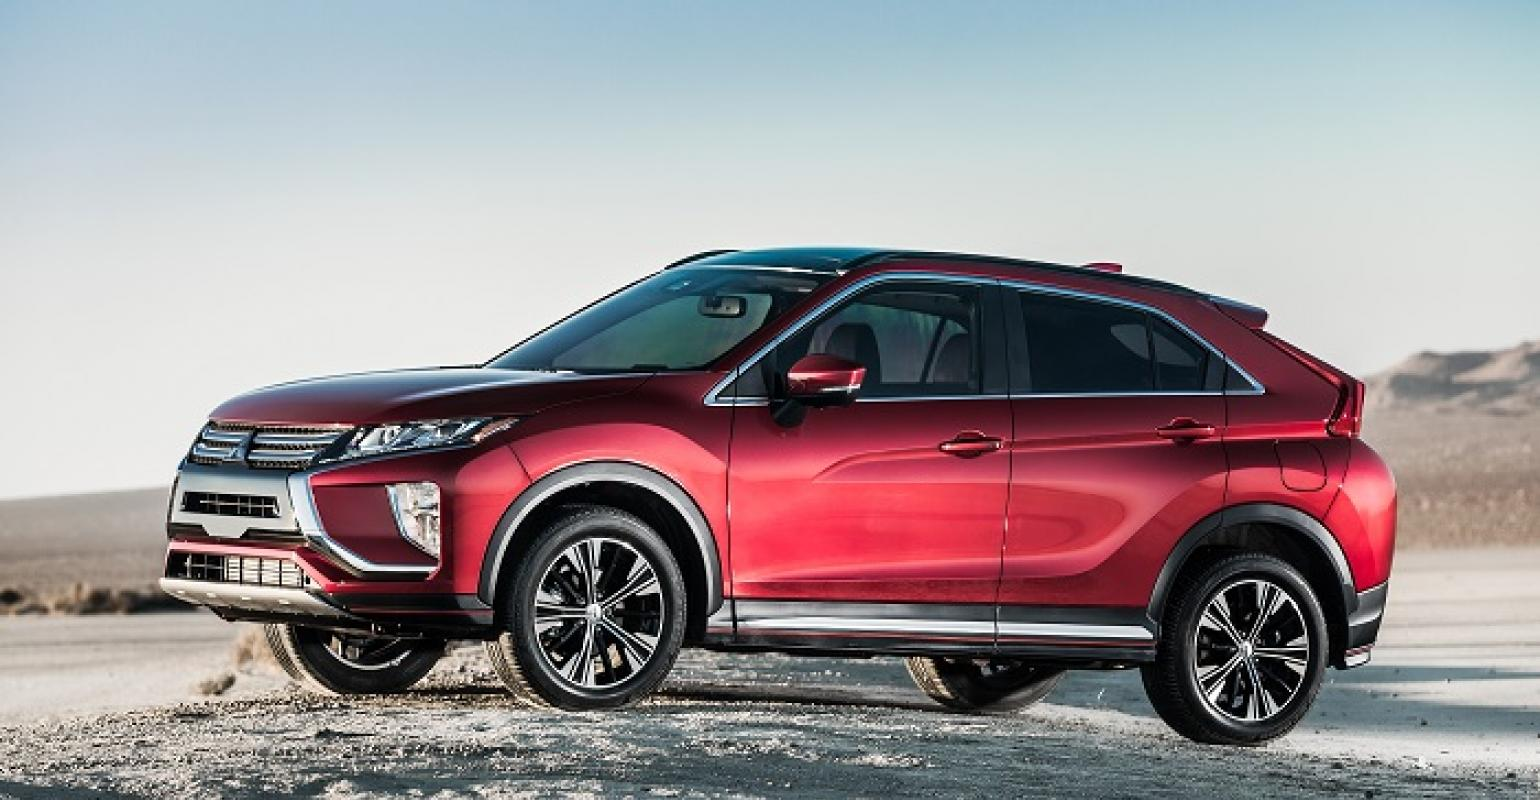 Mitsubishi Eclipse Reborn As Cuv Wardsauto